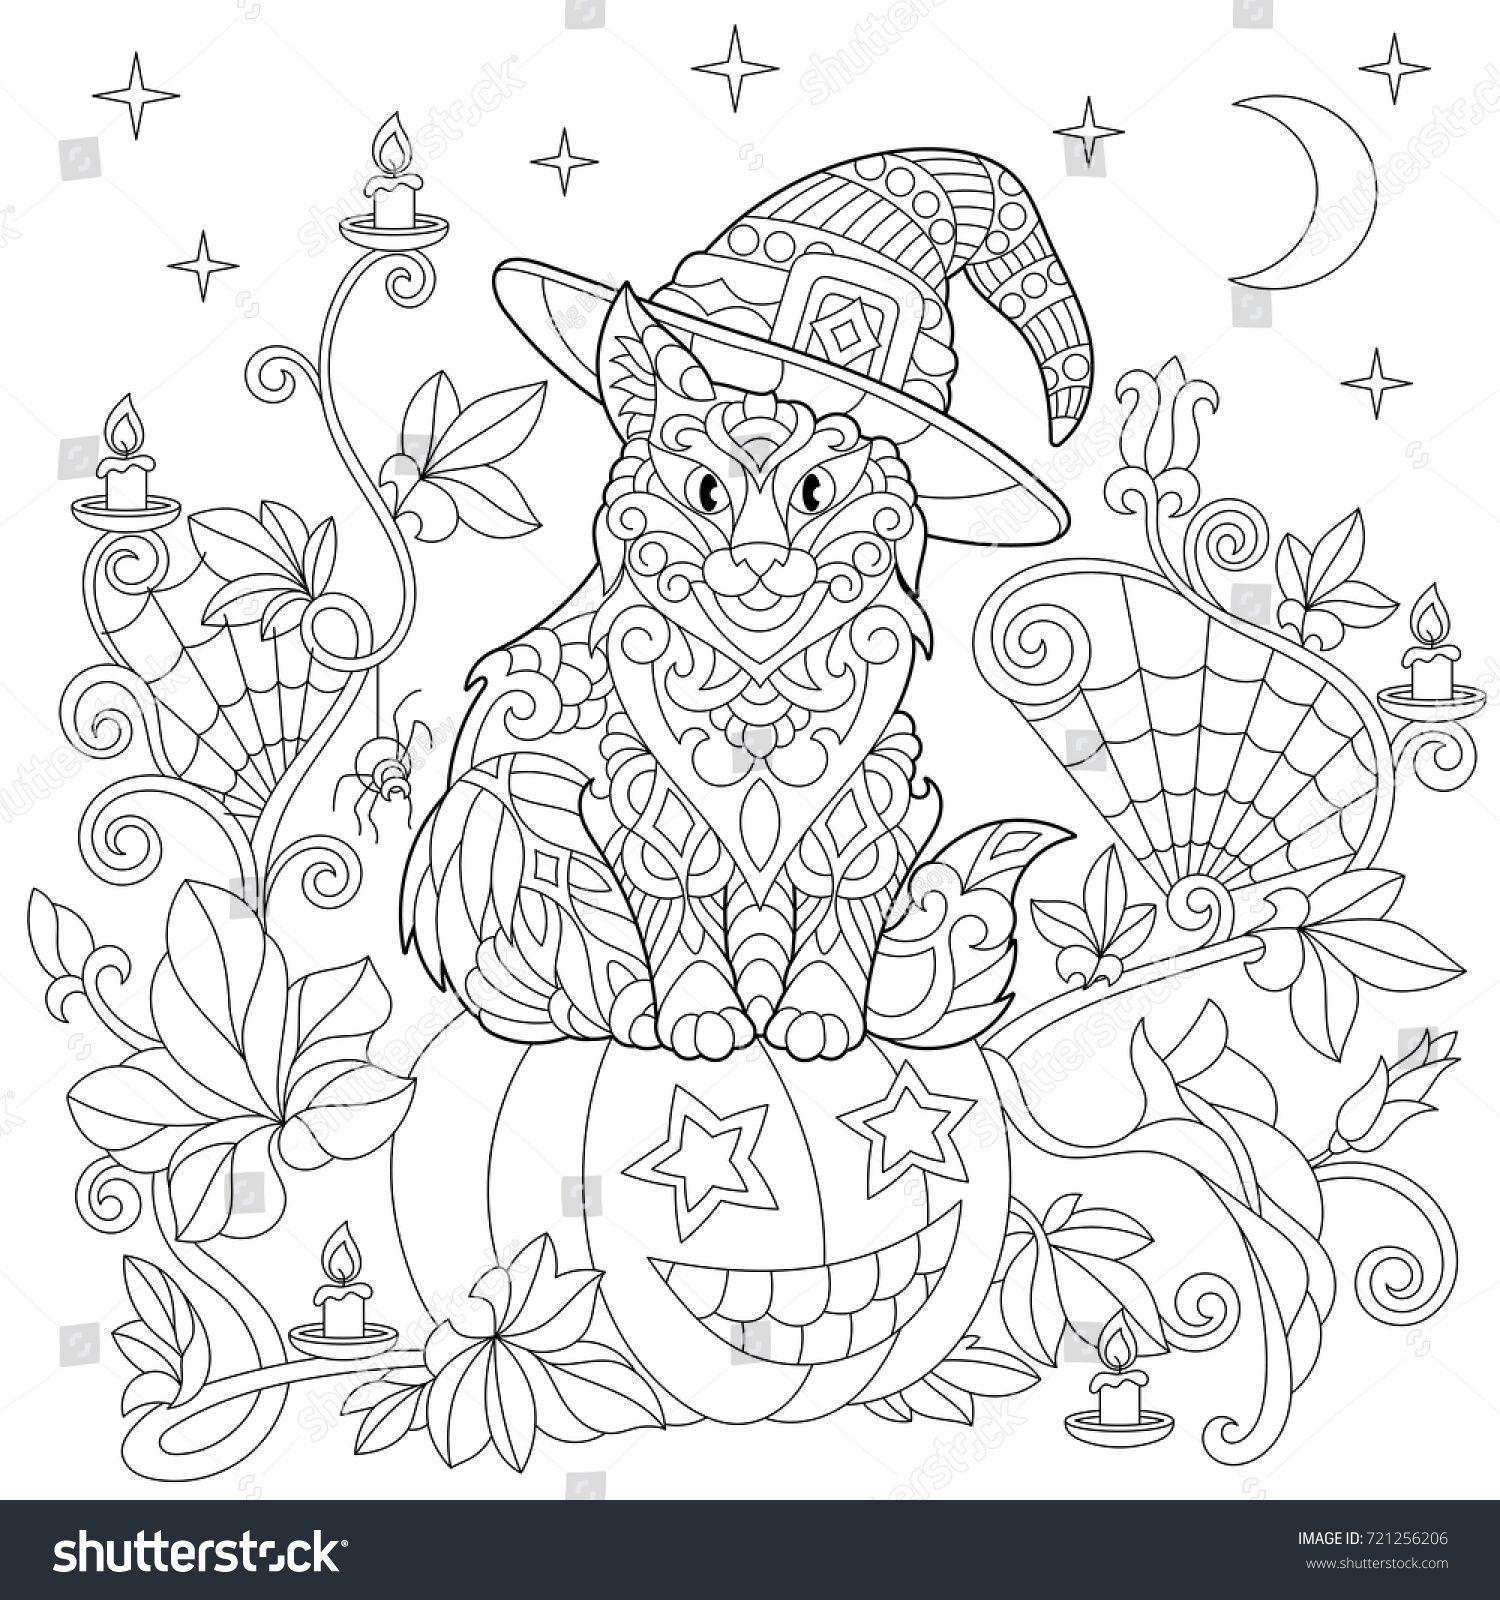 Halloween Coloring Page Cat In A Hat Halloween Pumpkin Spider Web Lanterns With Candles Moon Halloween Coloring Pages Halloween Coloring Cat Coloring Page